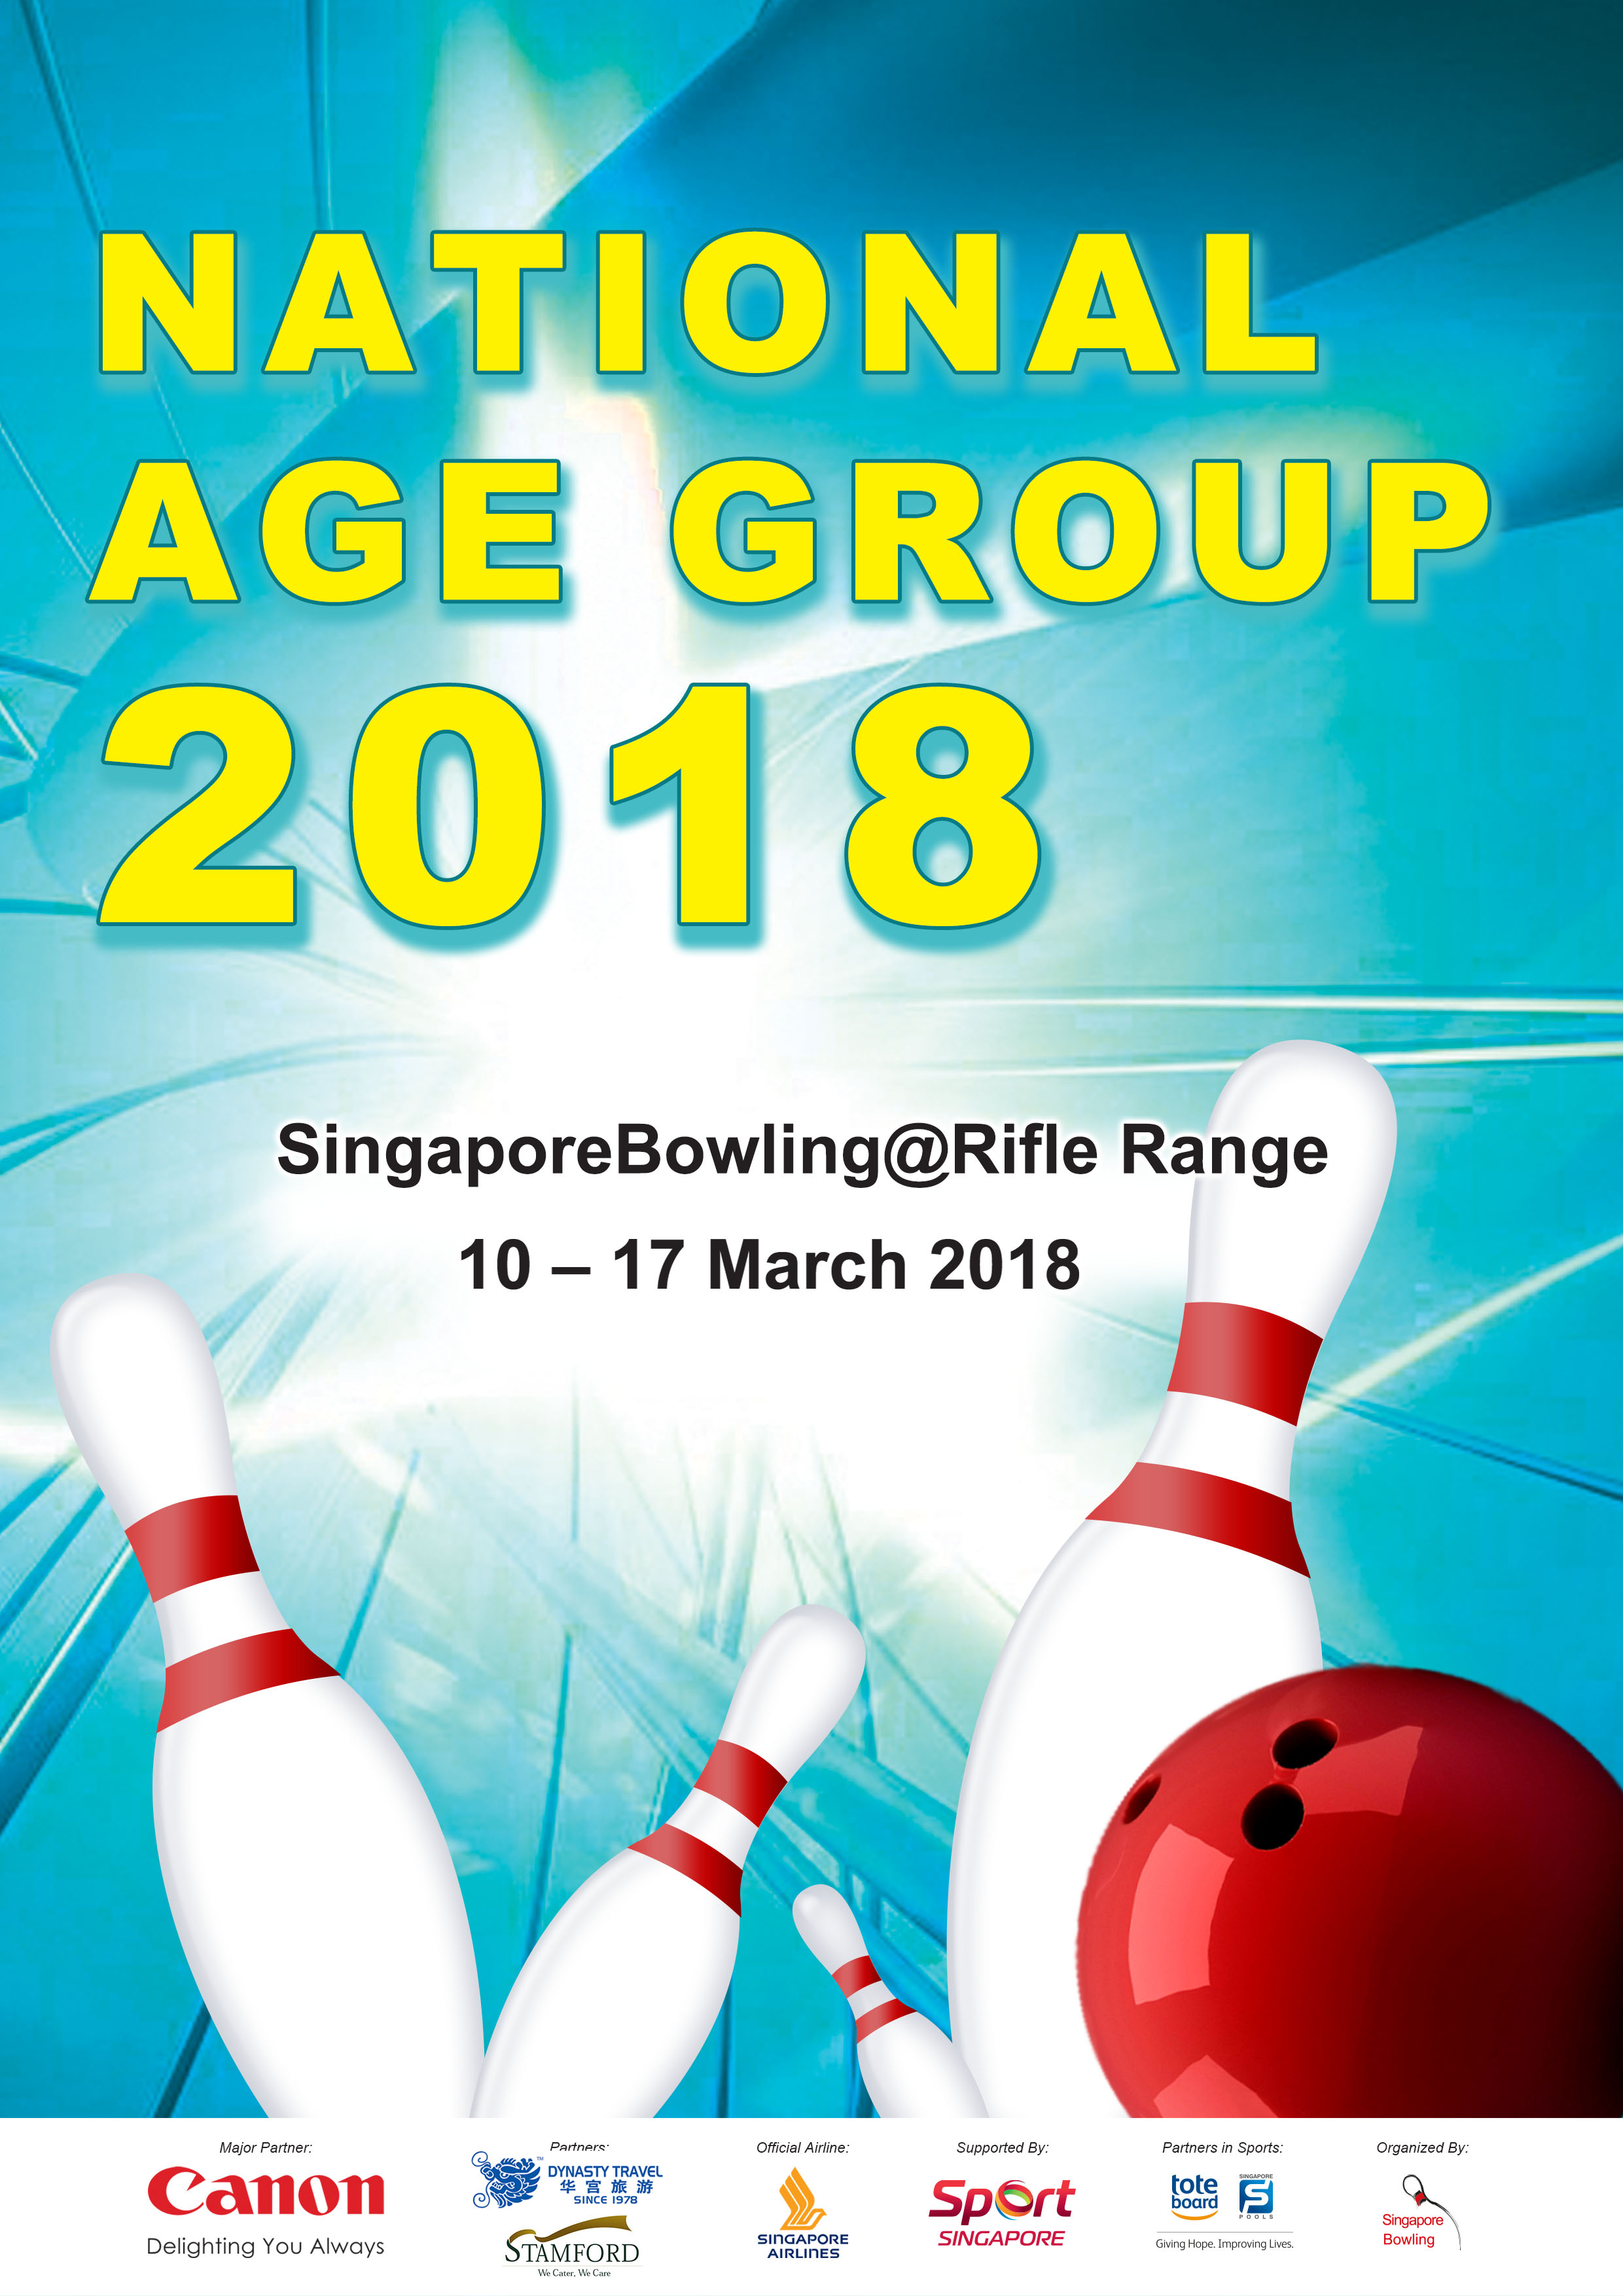 National Age Group 2018